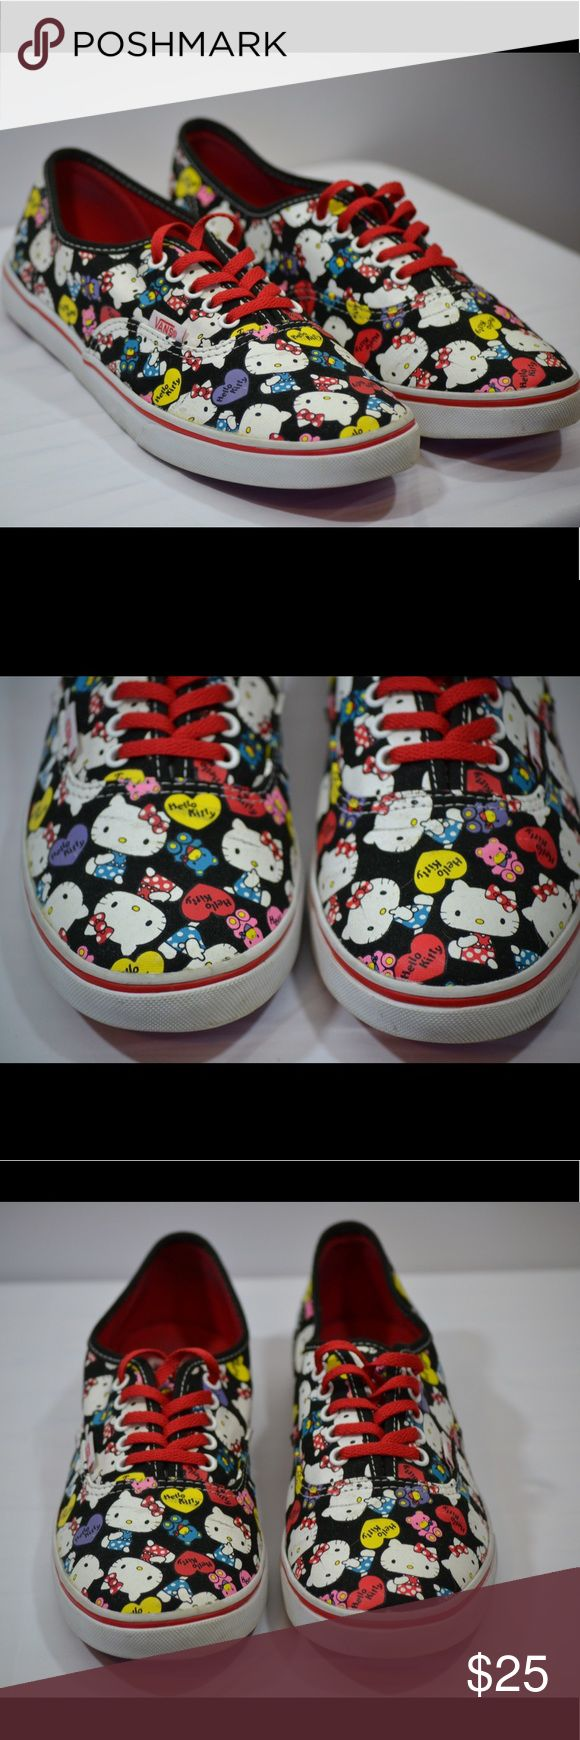 Hello Kitty Vans Classics Men's 7, Women's 8.5 Hello Kitty Vans Classics Men's 7, Women's 8.5. Shoes are in good condition but the print on shoes shows wear. Vans Shoes Sneakers